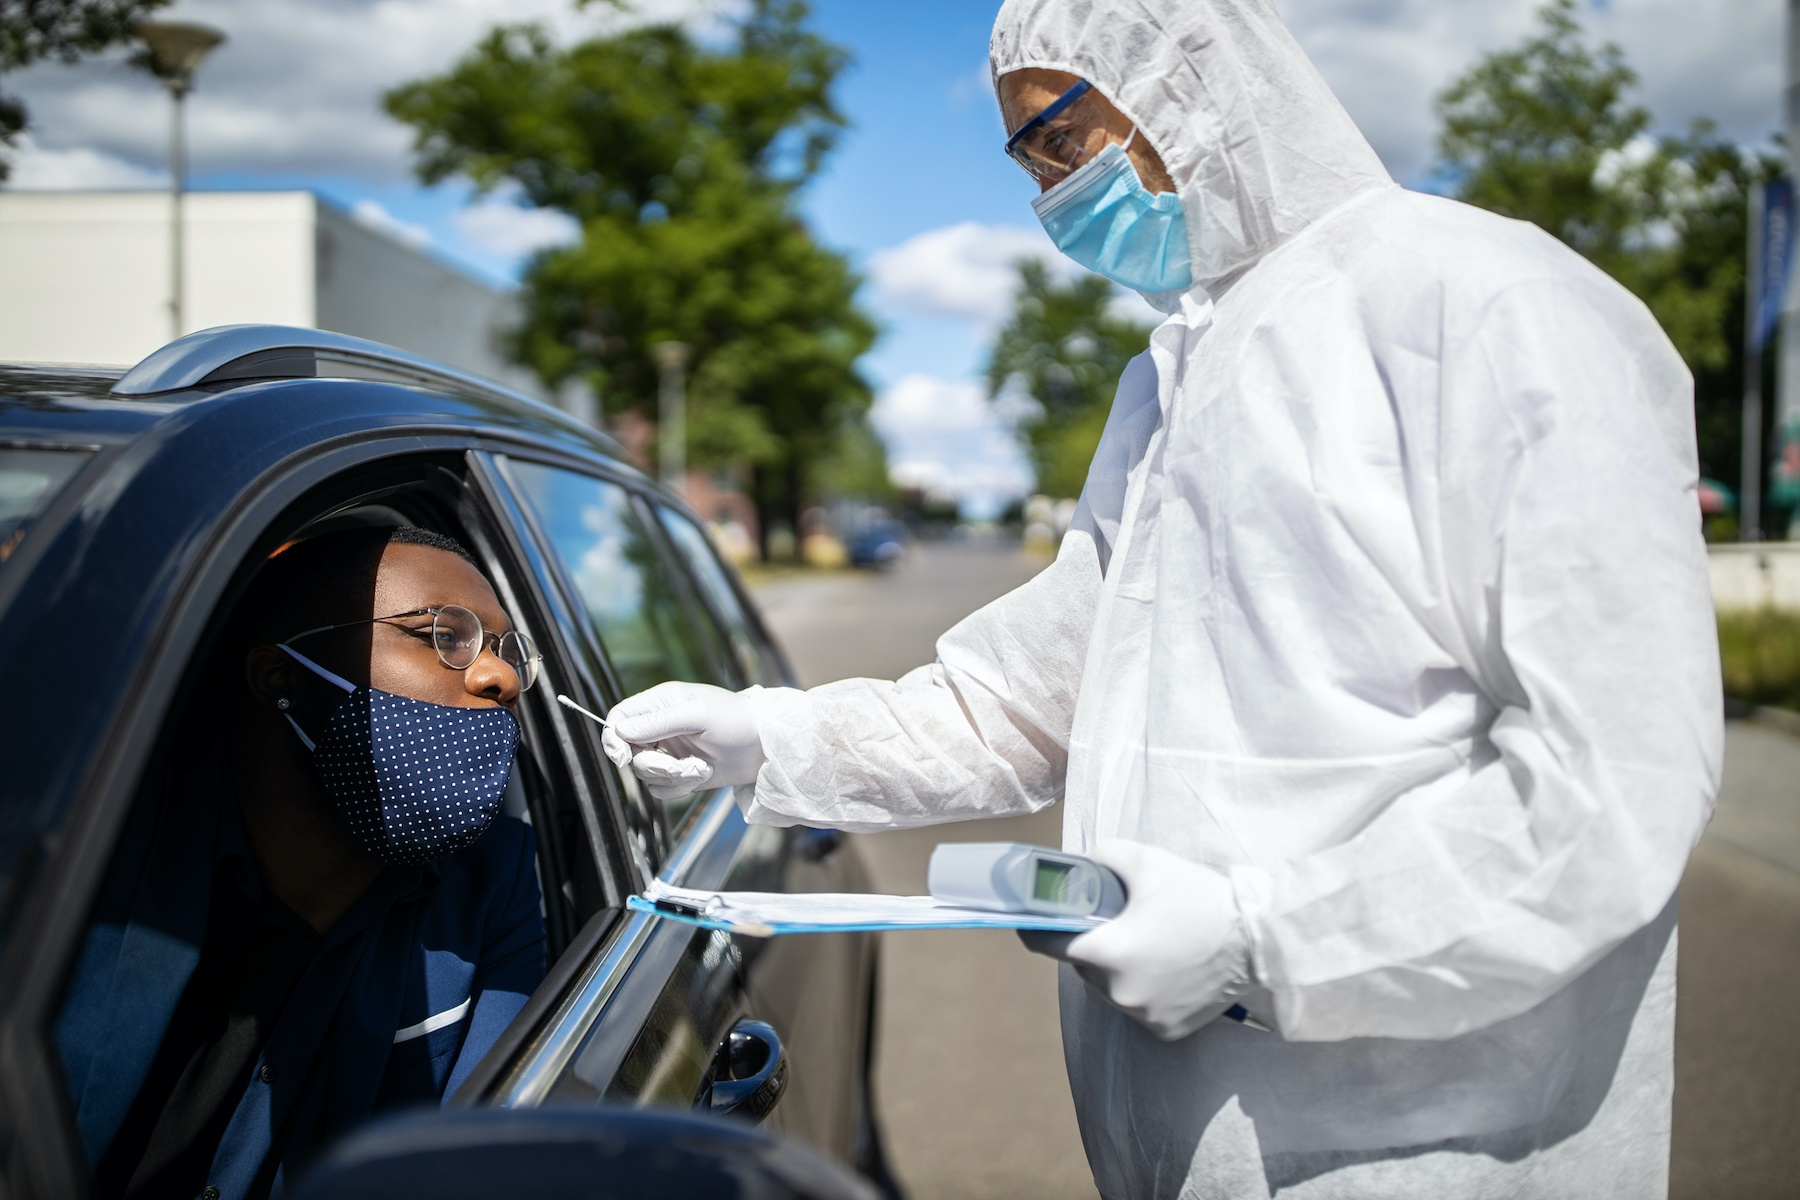 Doctor in a protective suit taking a nasal swab from a person to test for coronavirus infection.